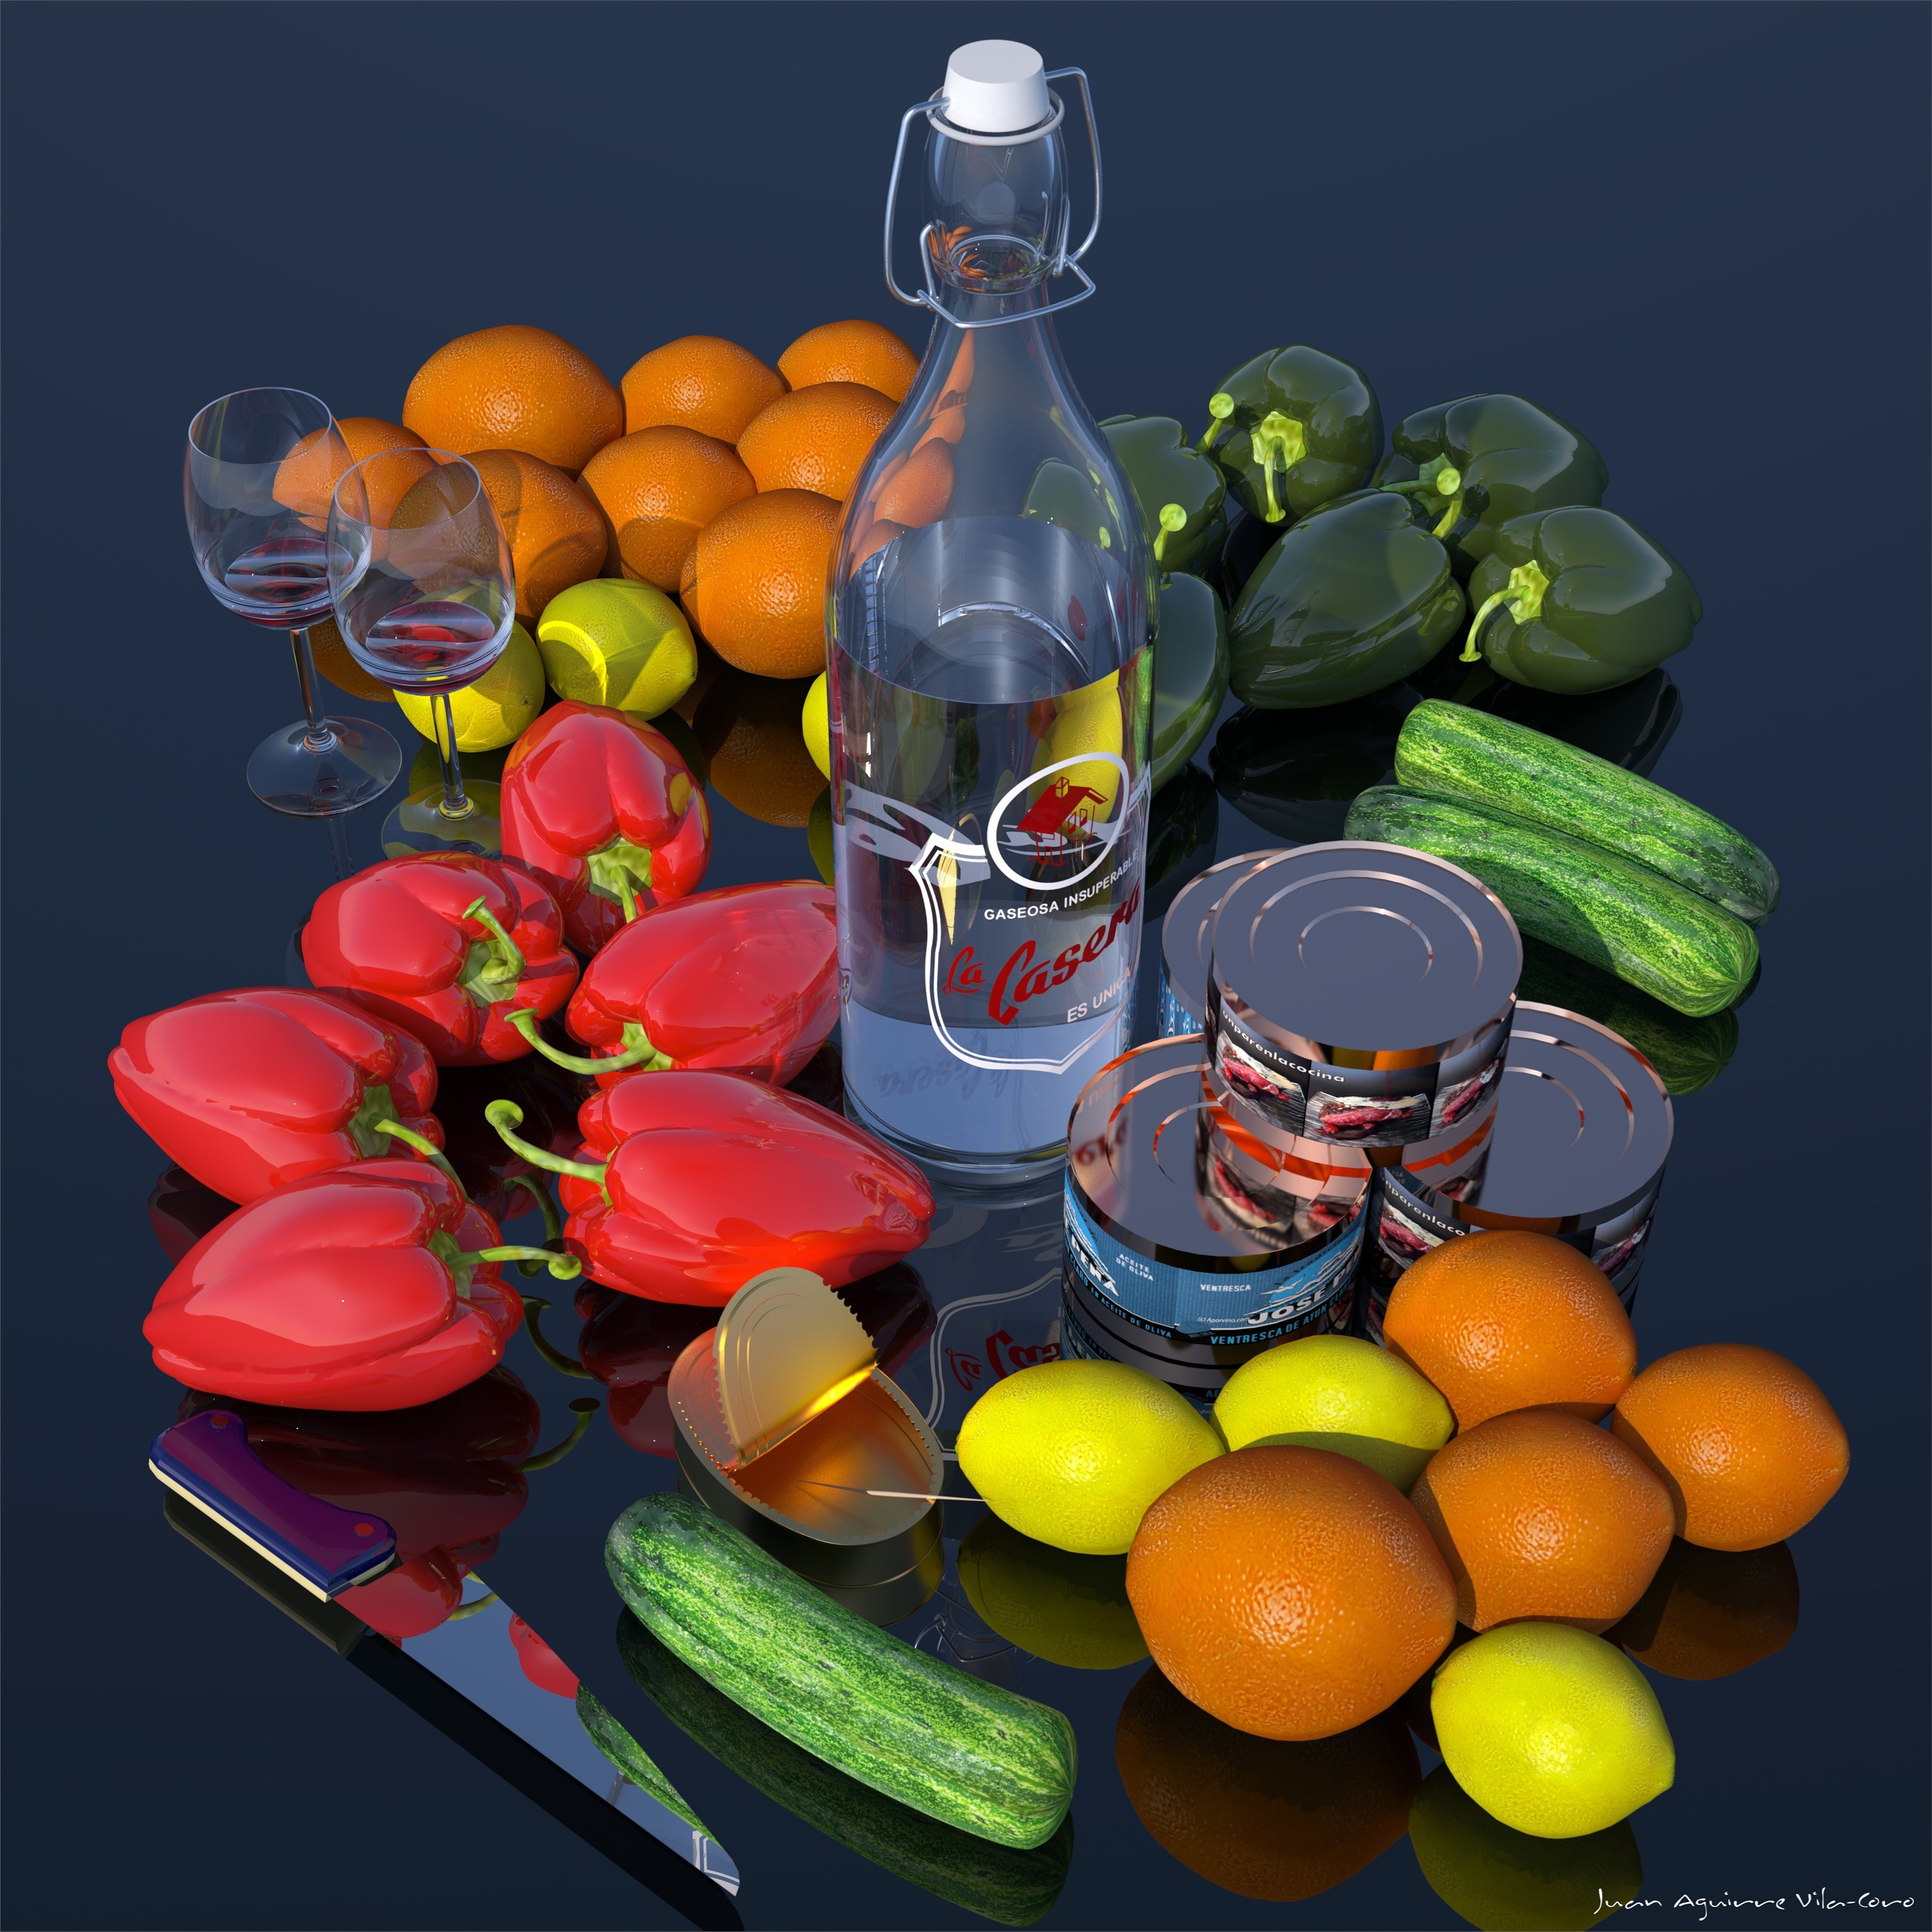 BODEGON EN PVC, original Still Life Digital Painting by juan aguirre